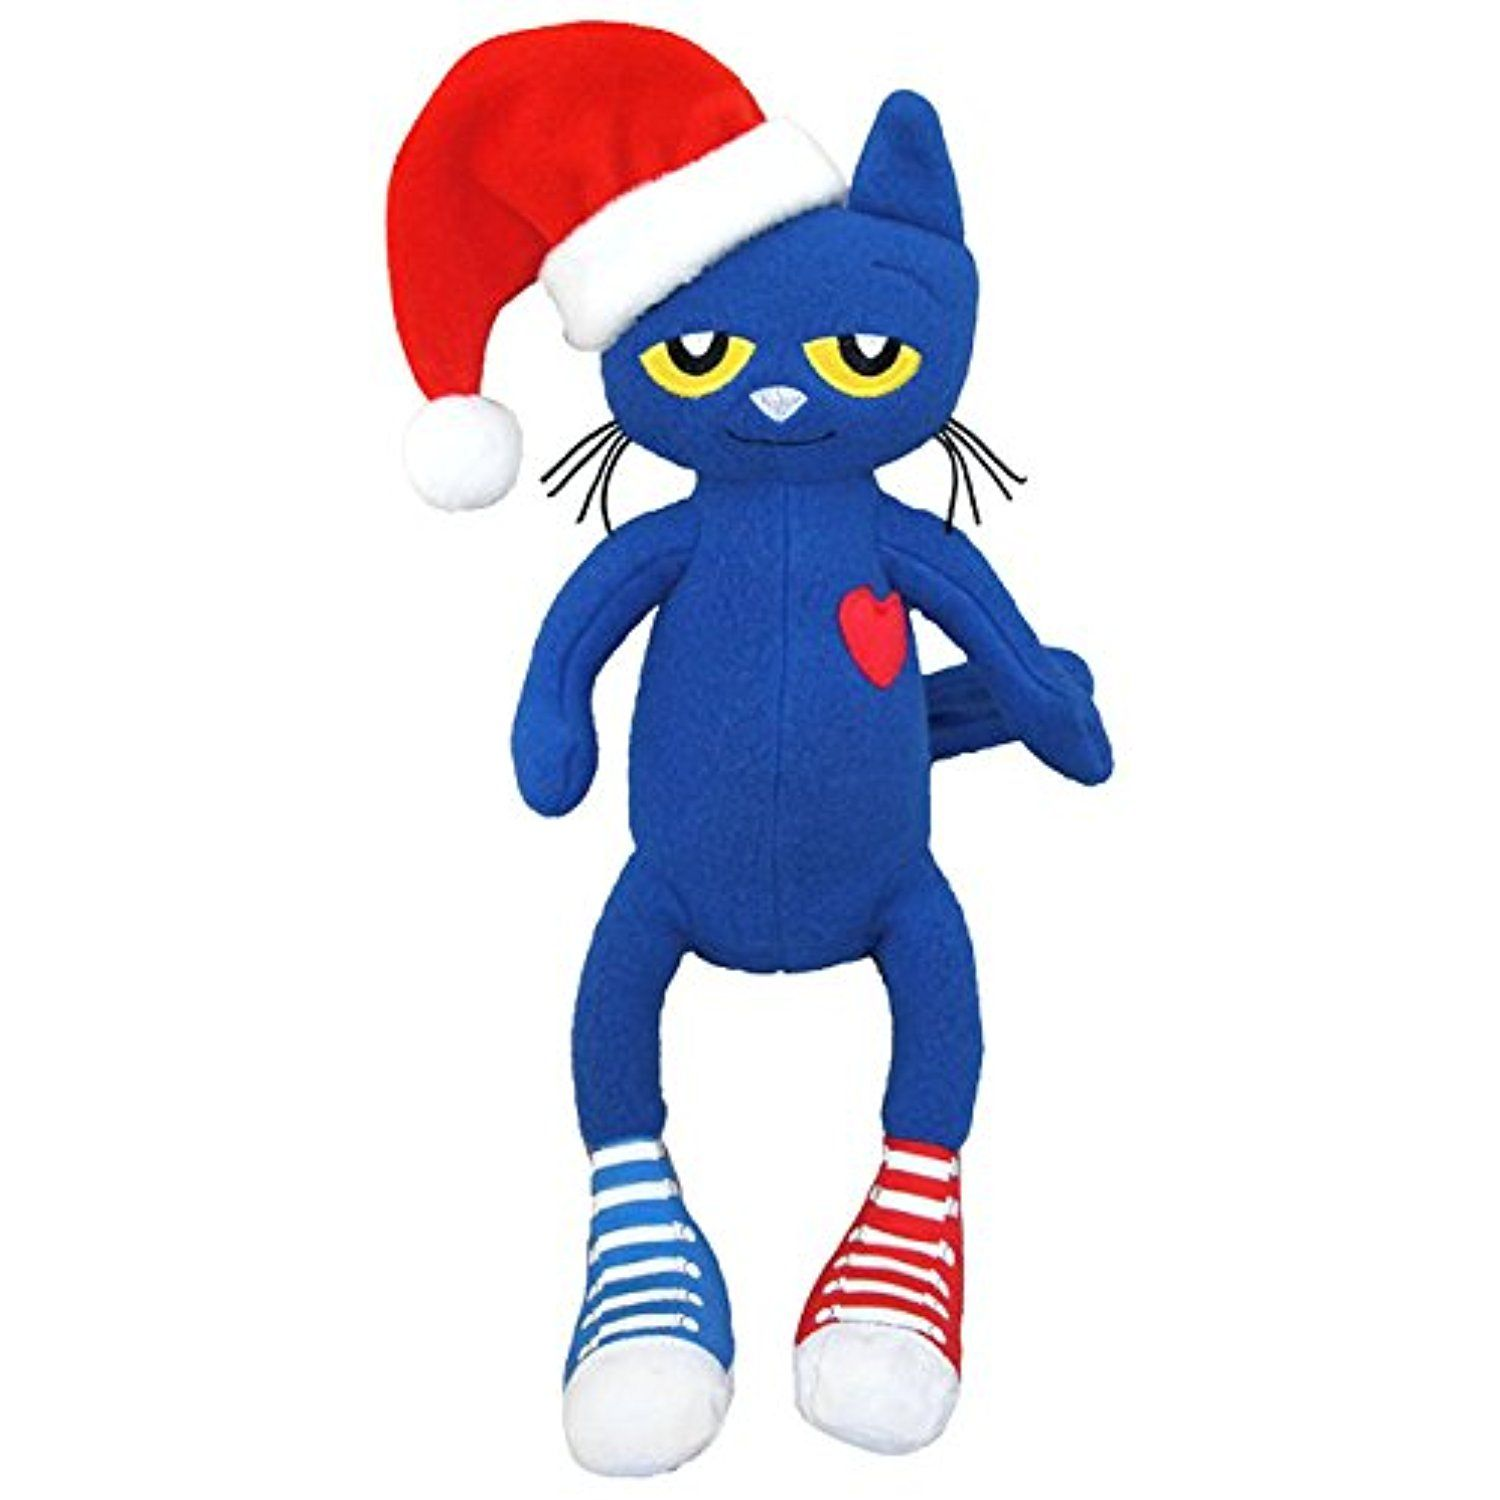 Merrymakers pete the cat saves christmas plush doll 15